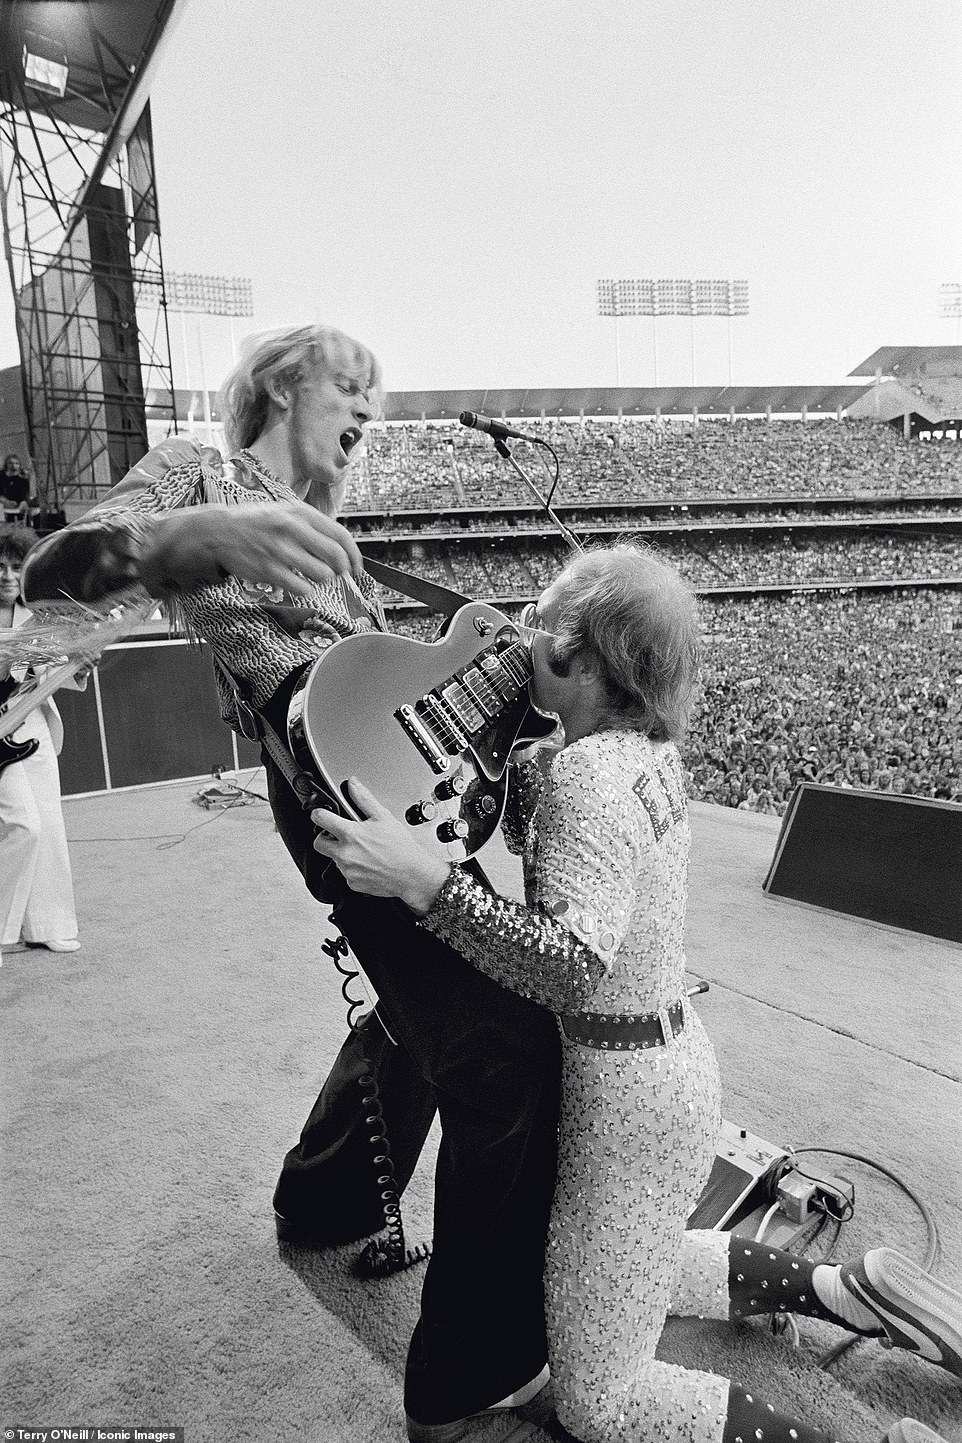 Thirteen rare vintage photographs from Terry's collection will go on display at London's Zebra One Gallery, including one of Elton John kissing  Davey Johnstone's guitar during his show at the Dodger Stadium in Los Angeles, October 1975